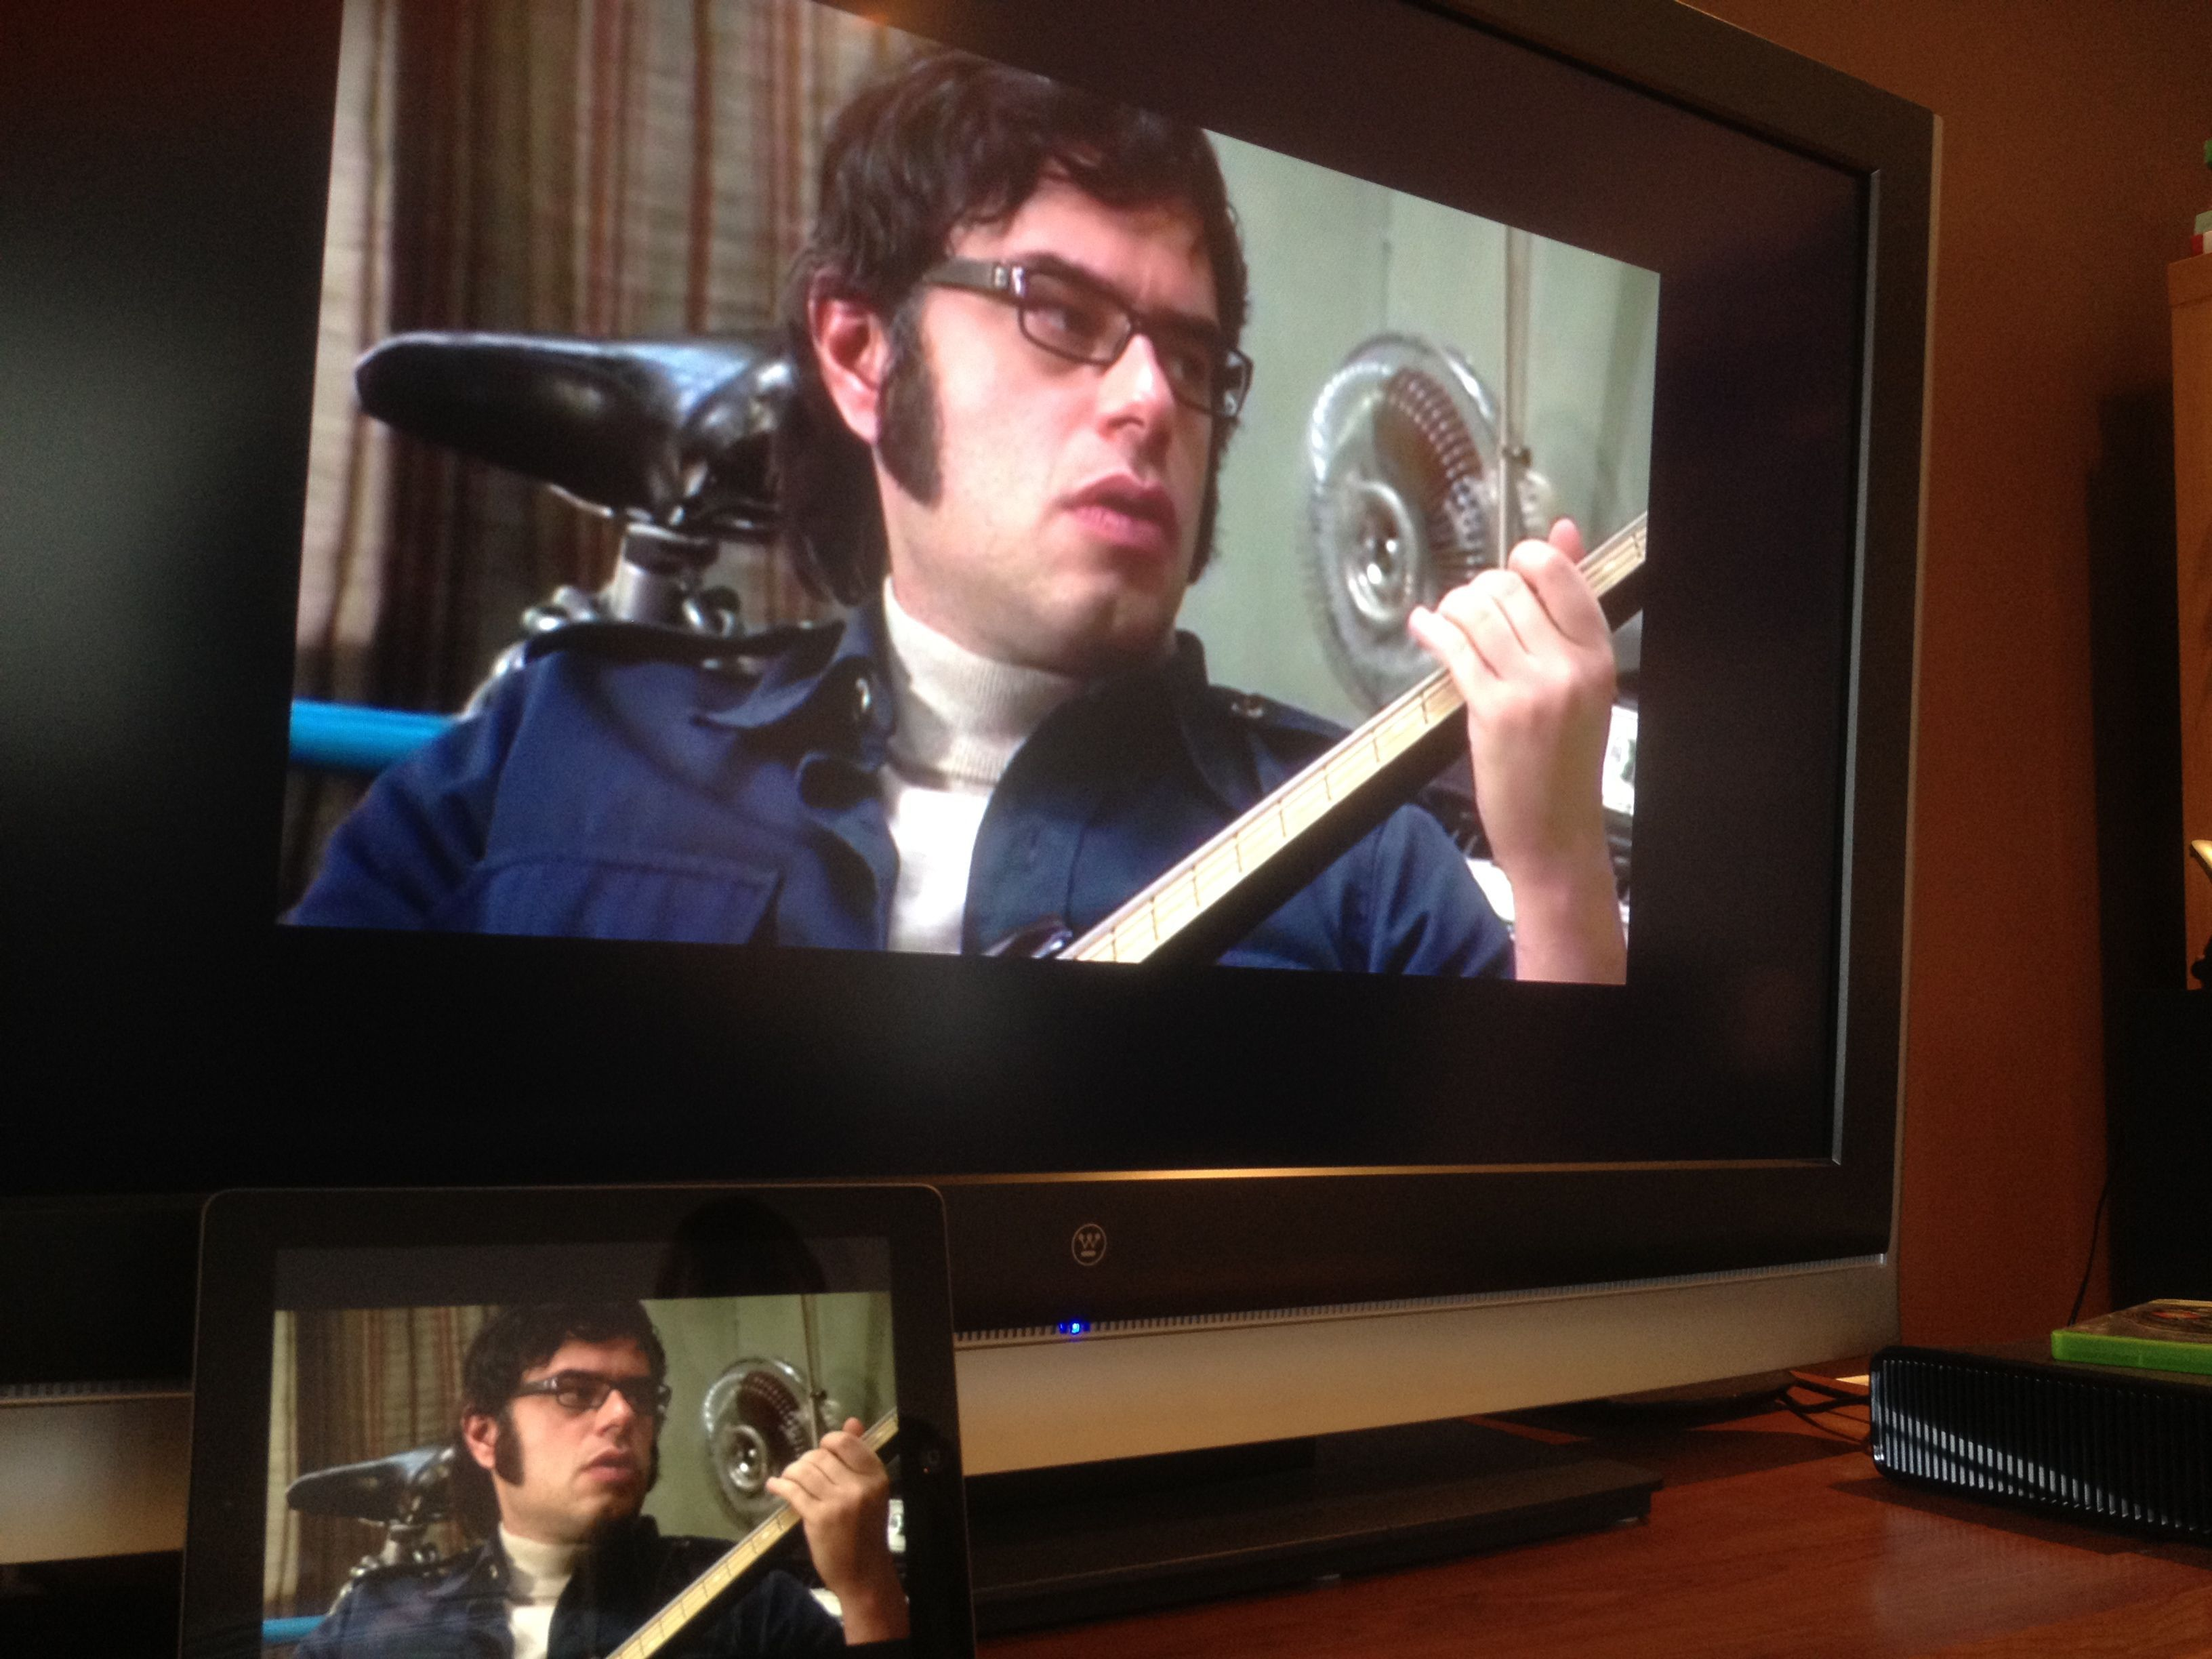 """Flight of the Conchords"" shown via a new iPad connected to an Apple TV and running the Comcast Xfinity TV app."